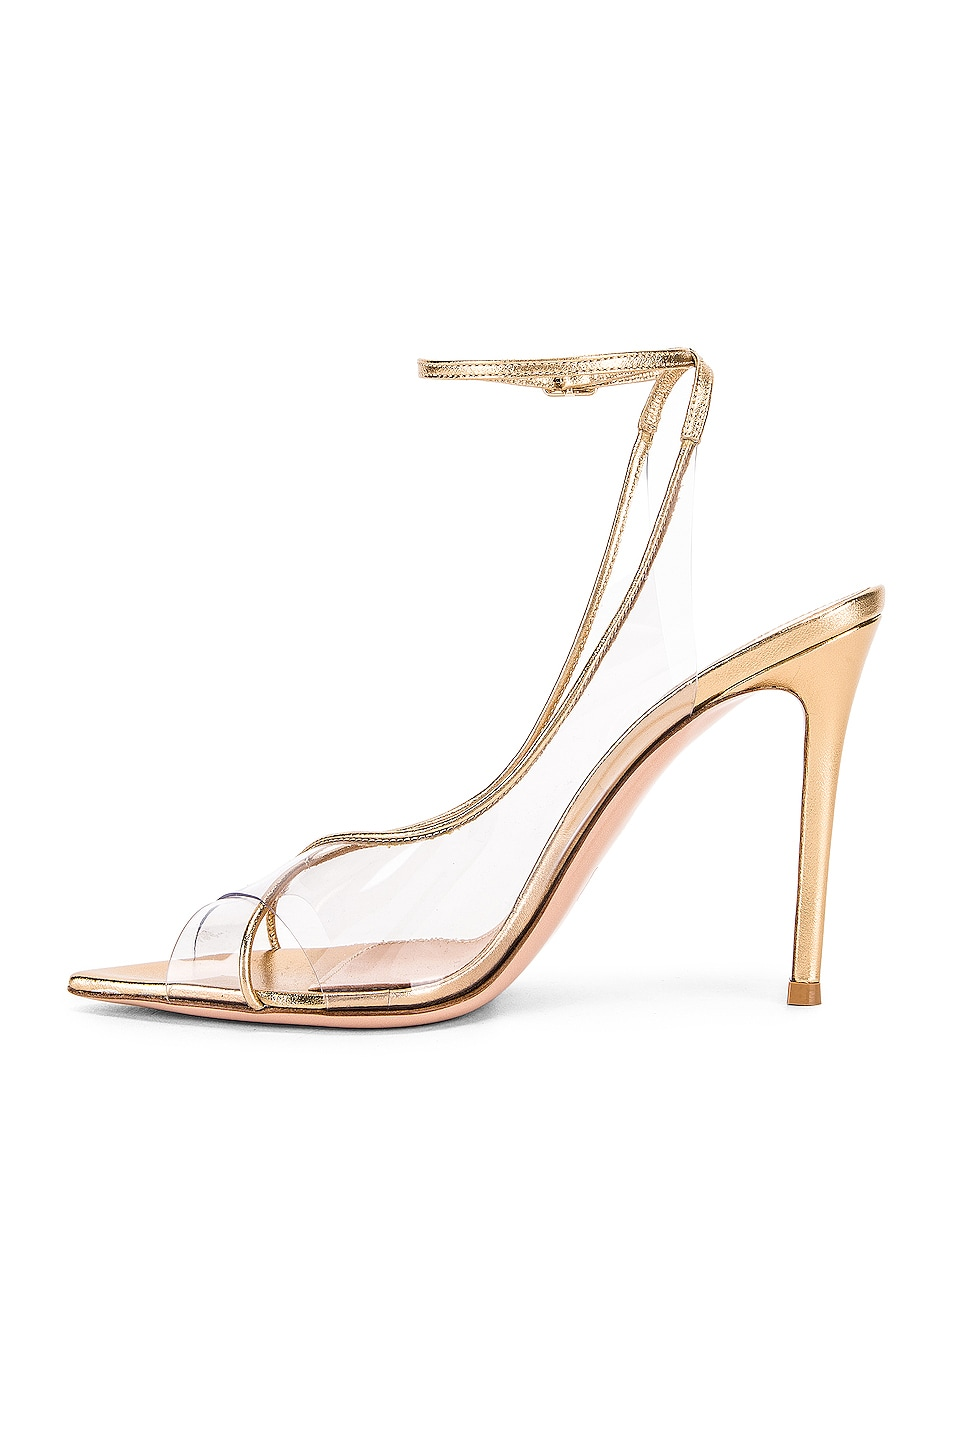 Image 5 of Gianvito Rossi Ankle Strap Heels in Gold & Transparent